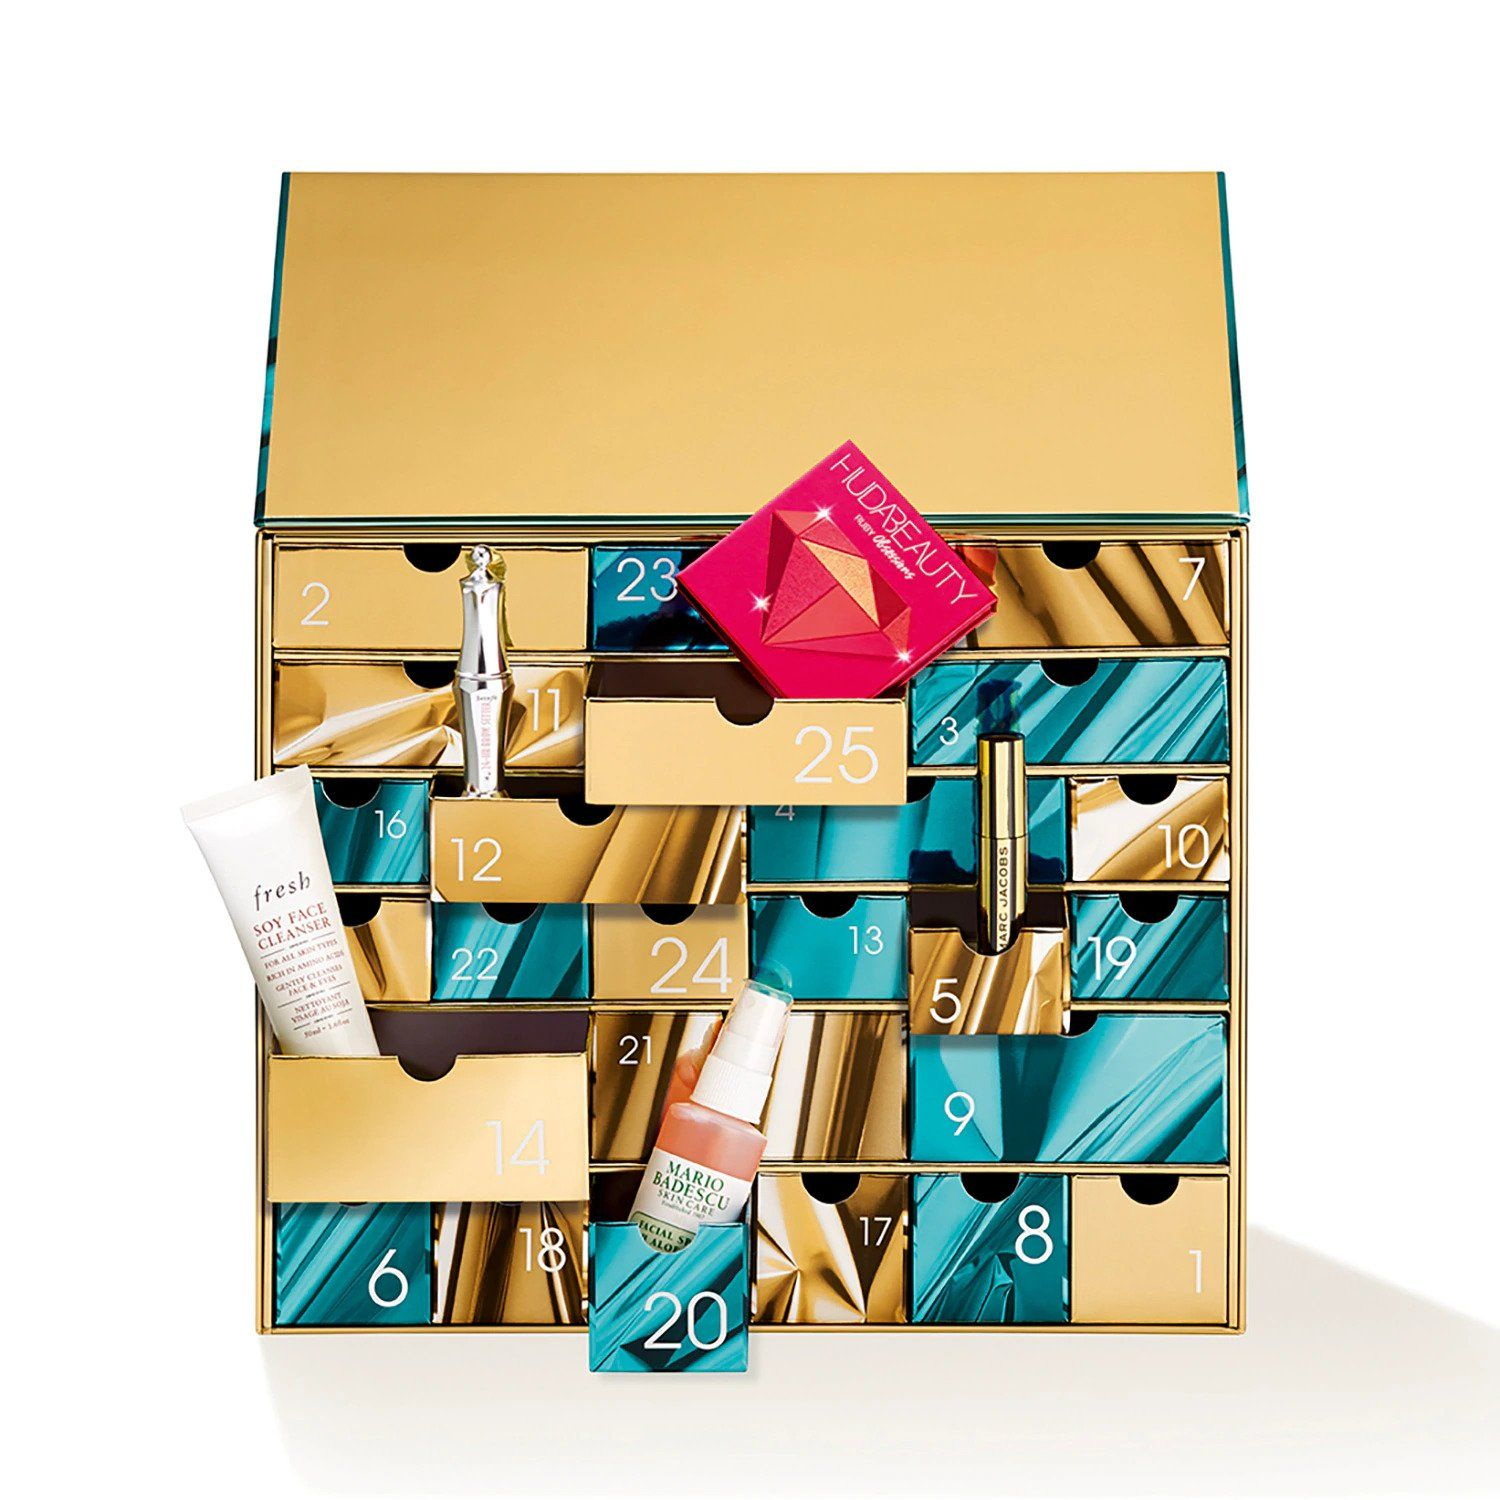 Best Christmas Gifts From Sephora 2020 111 Best Beauty Advent Calendars for Christmas 2020   Hot Beauty